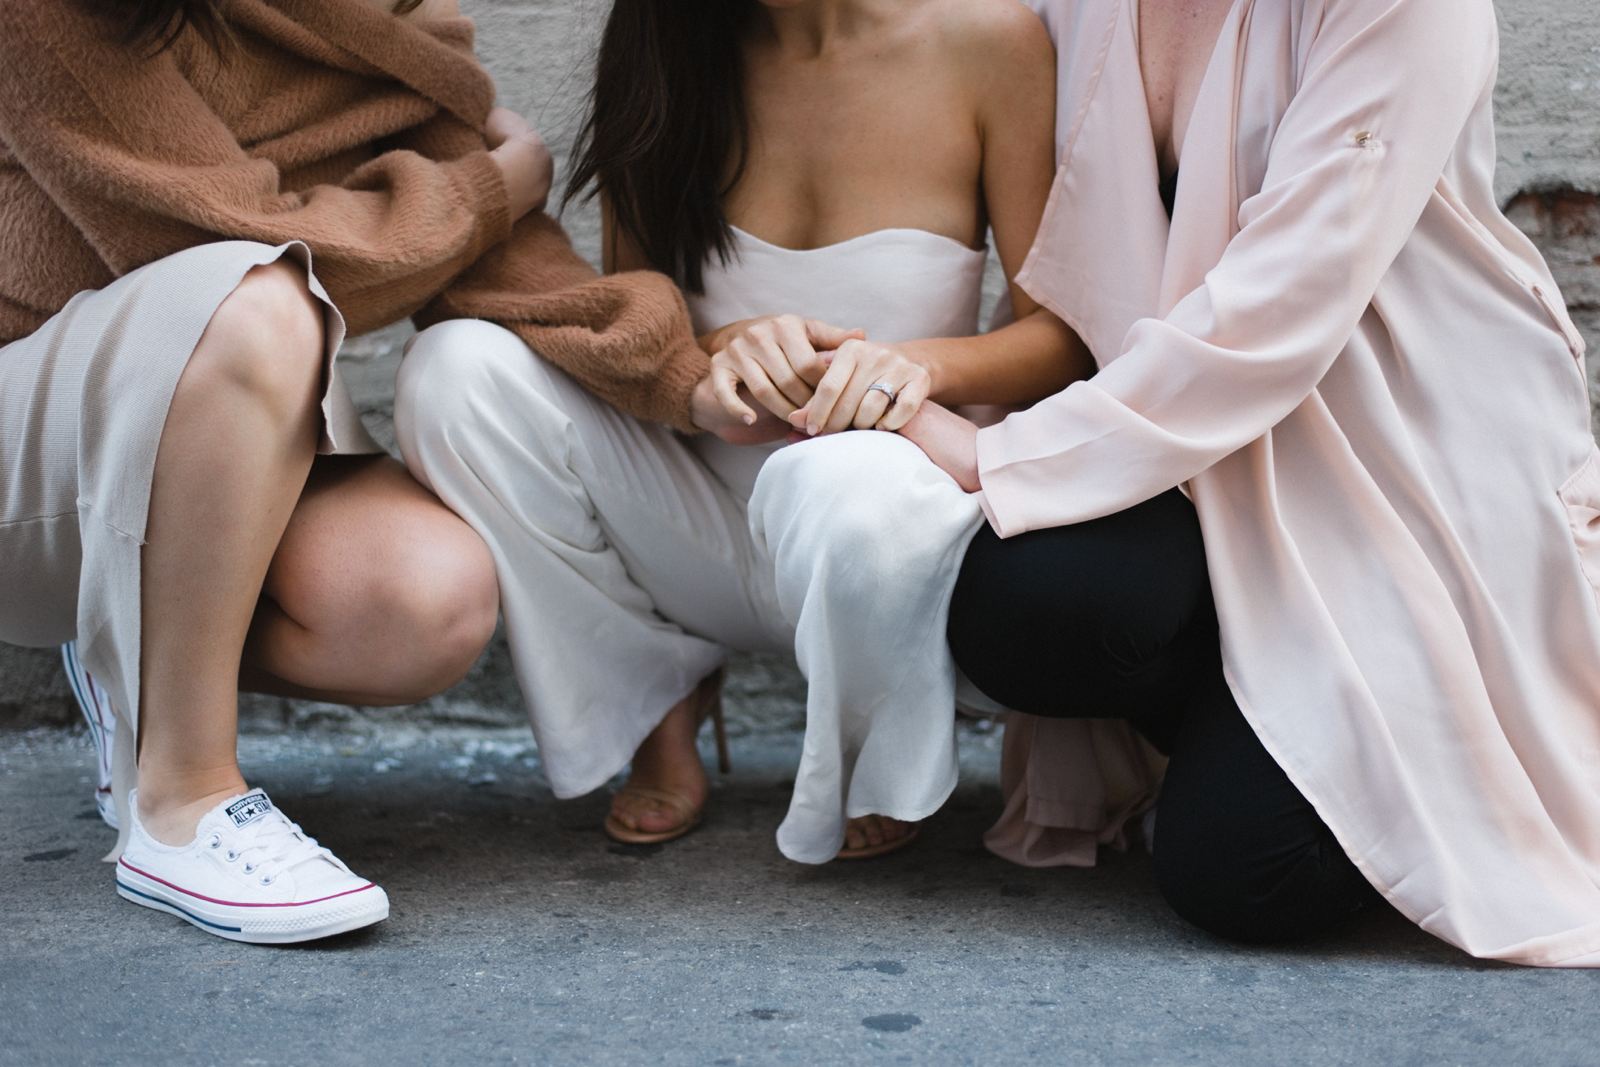 Three mamas in soft, neutral tones kneeling down and holding hands in a rural, downtown setting.